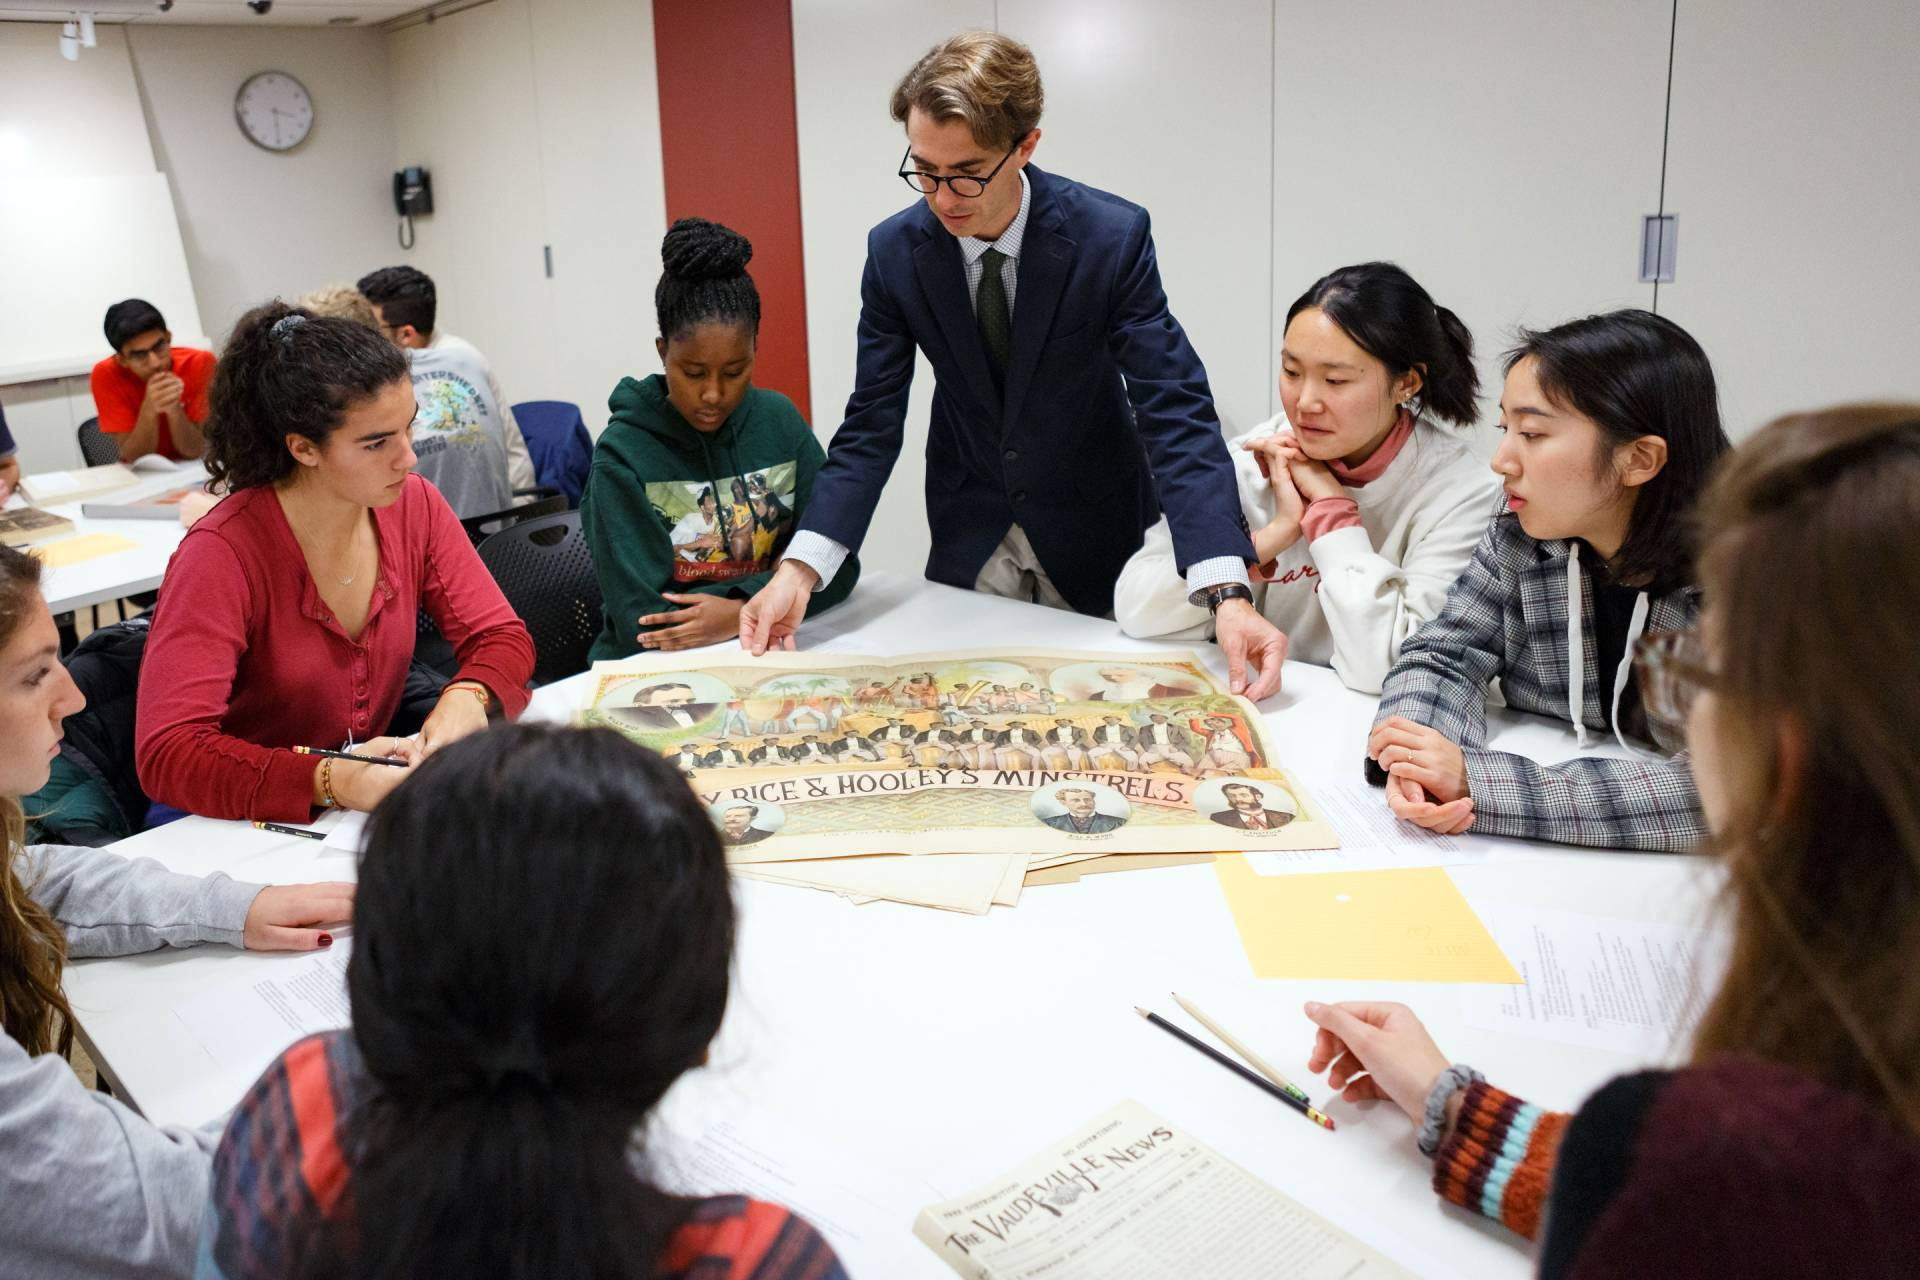 Professor and students look at materials from special collections